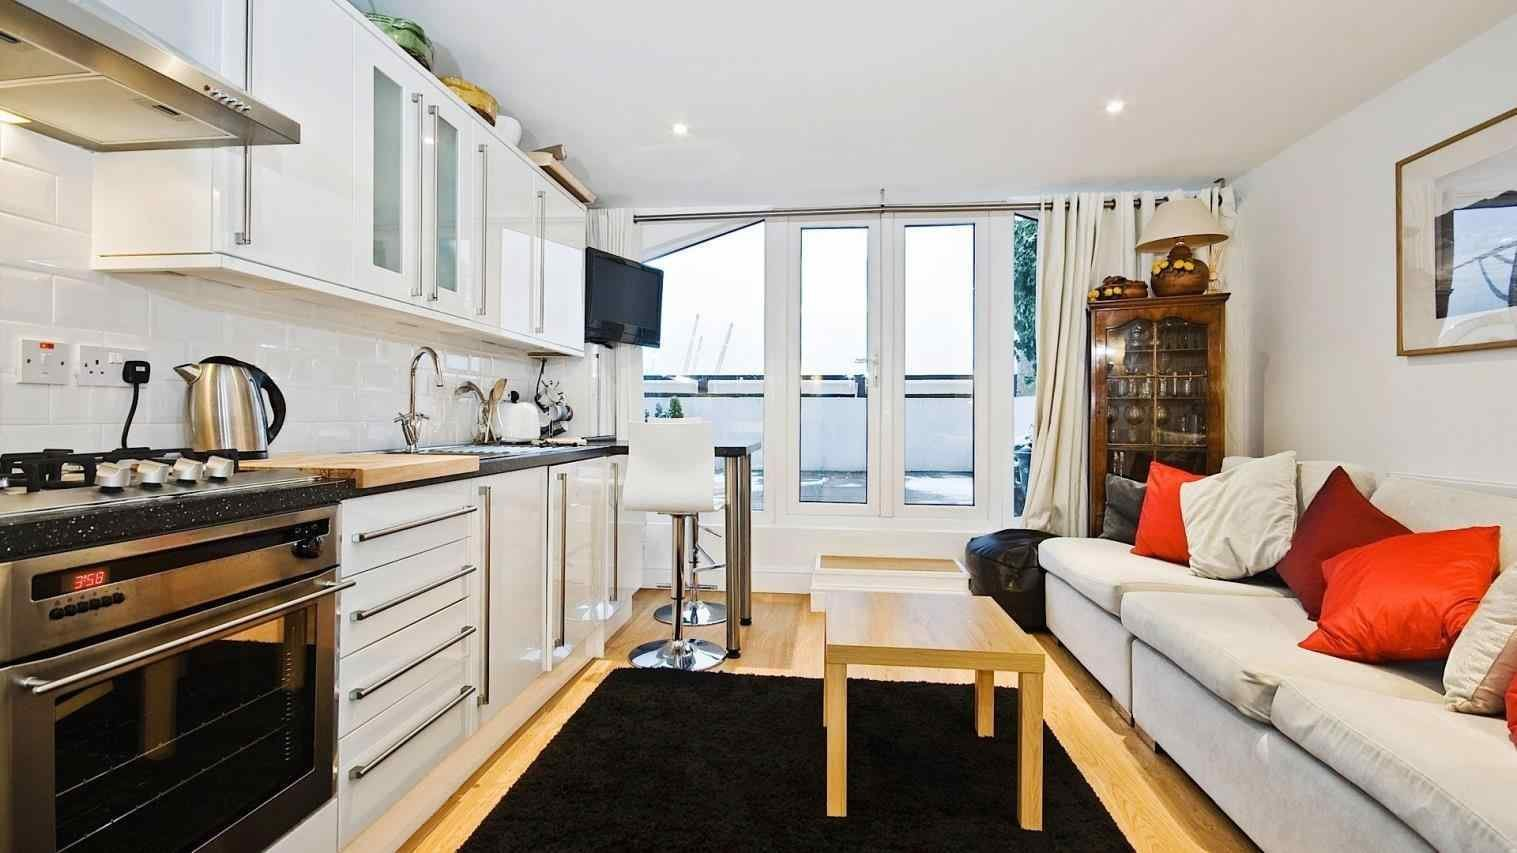 Best Pros And Cons Of Renting A Studio Vs A One Bedroom With Pictures